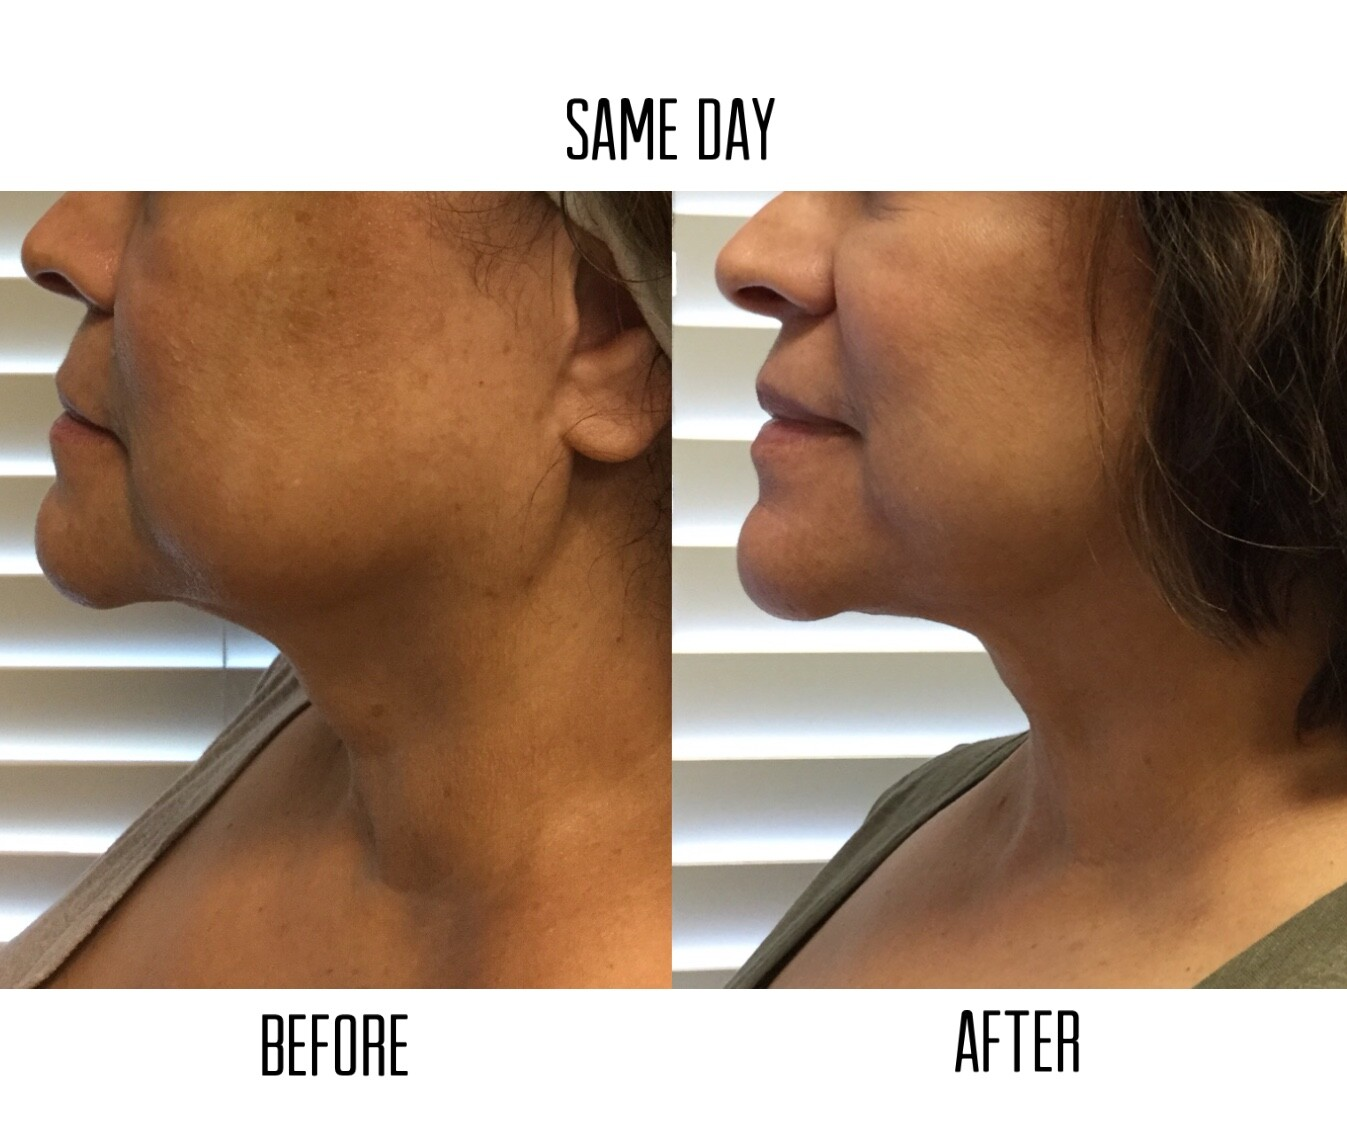 12 month results from ultrasound skin tightening in Las Vegas